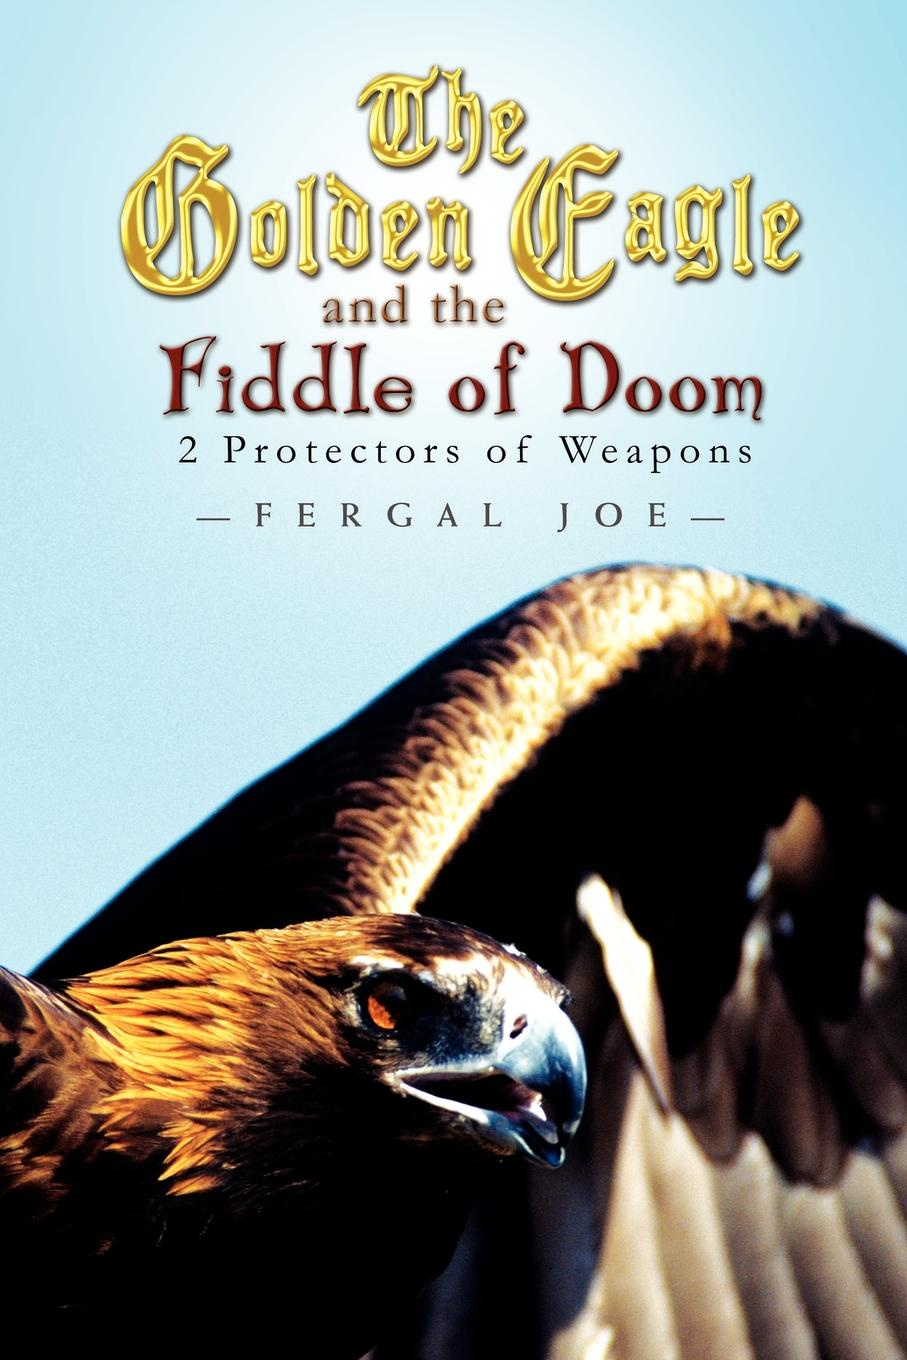 Fergal Joe The Golden Eagle and the Fiddle of Doom. 2 Protectors of Weapons weapons of fitness